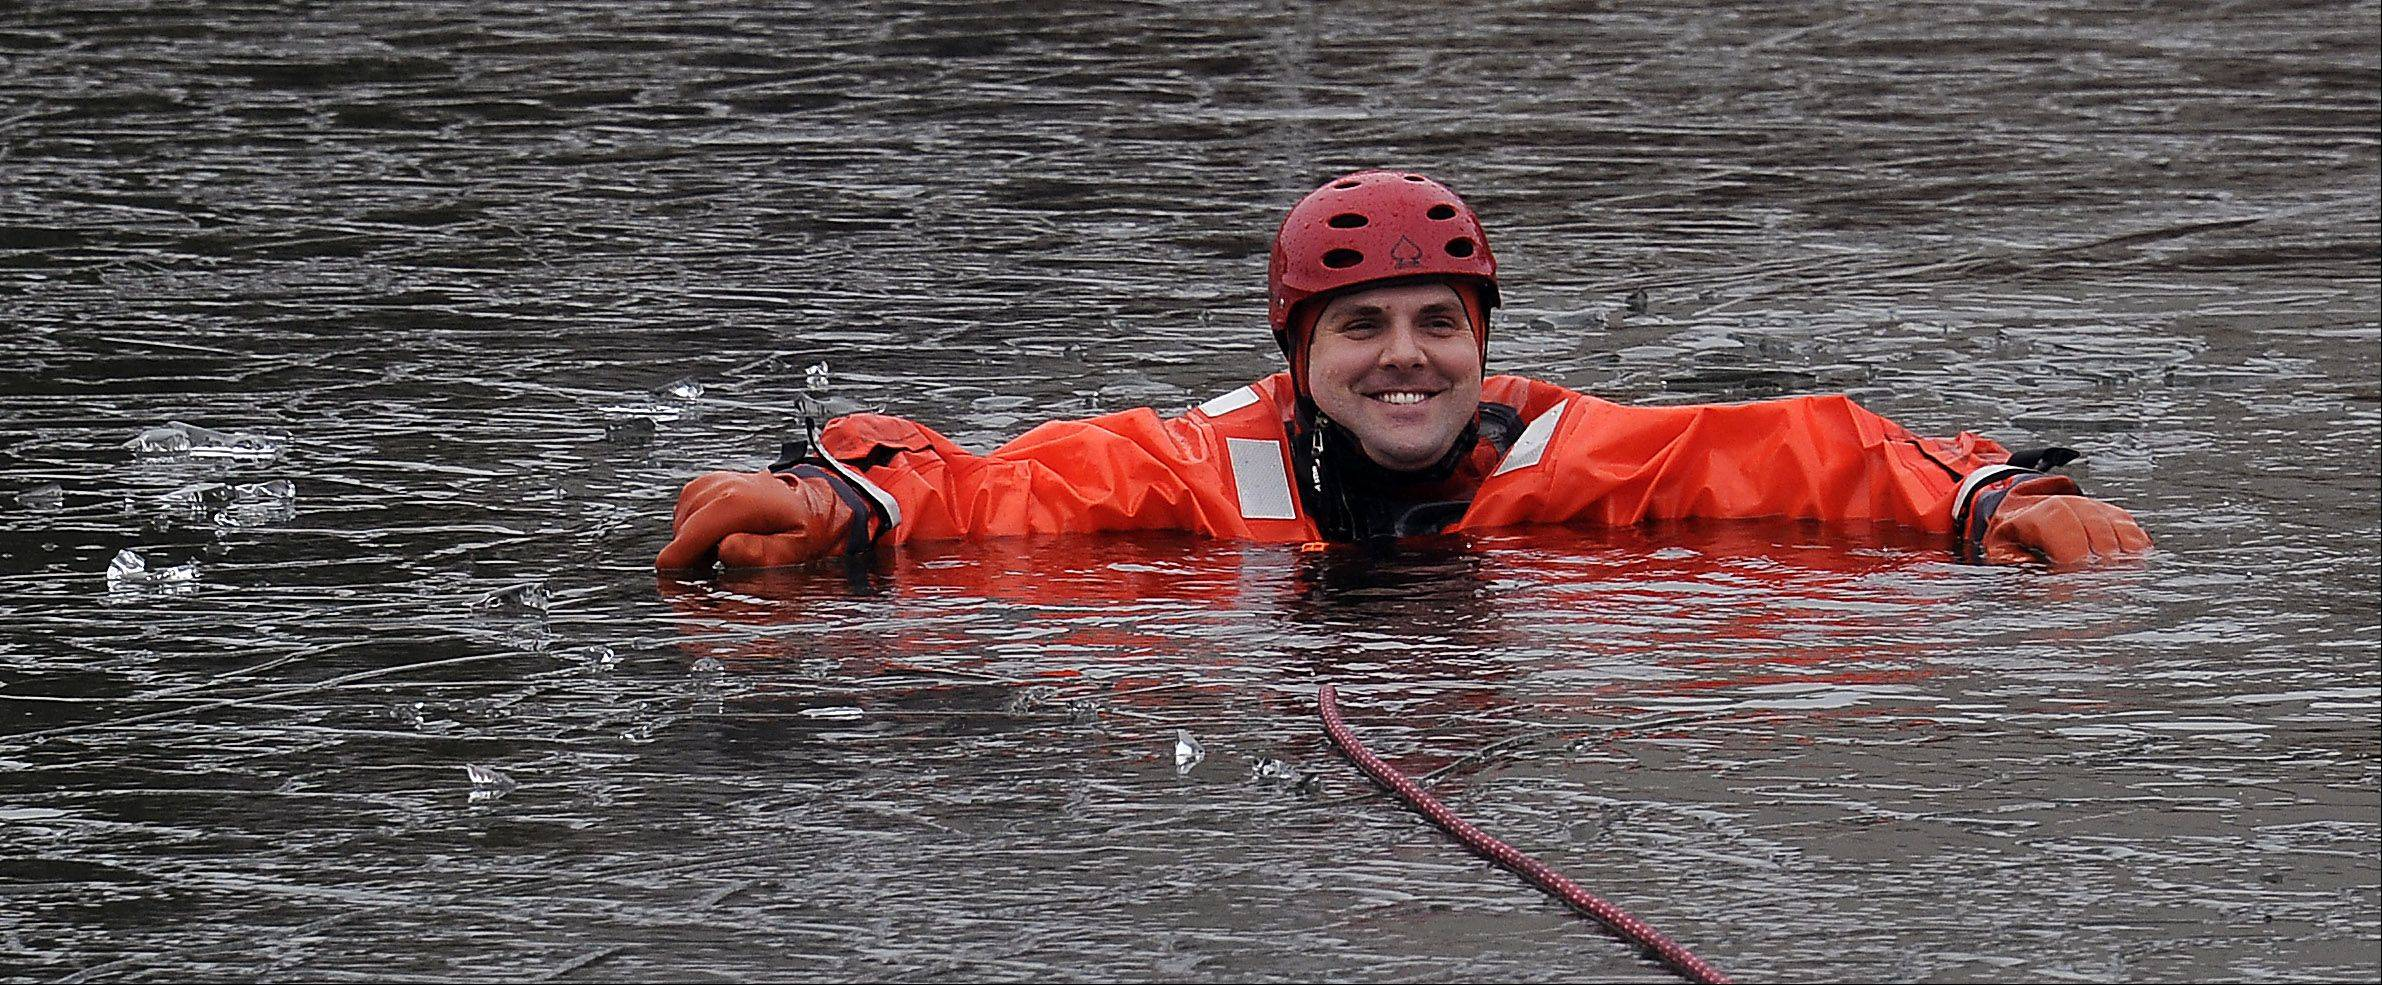 Firefighter/paramedic rescue victim Nick Otto from the Buffalo Grove Fire Department is all smiles as he waits in his dry suit to be rescued by fellow firefighters. They were practicing their drills at the retention pond located next to the Combined Area Fire Training Facility in Buffalo Grove on Wednesday.